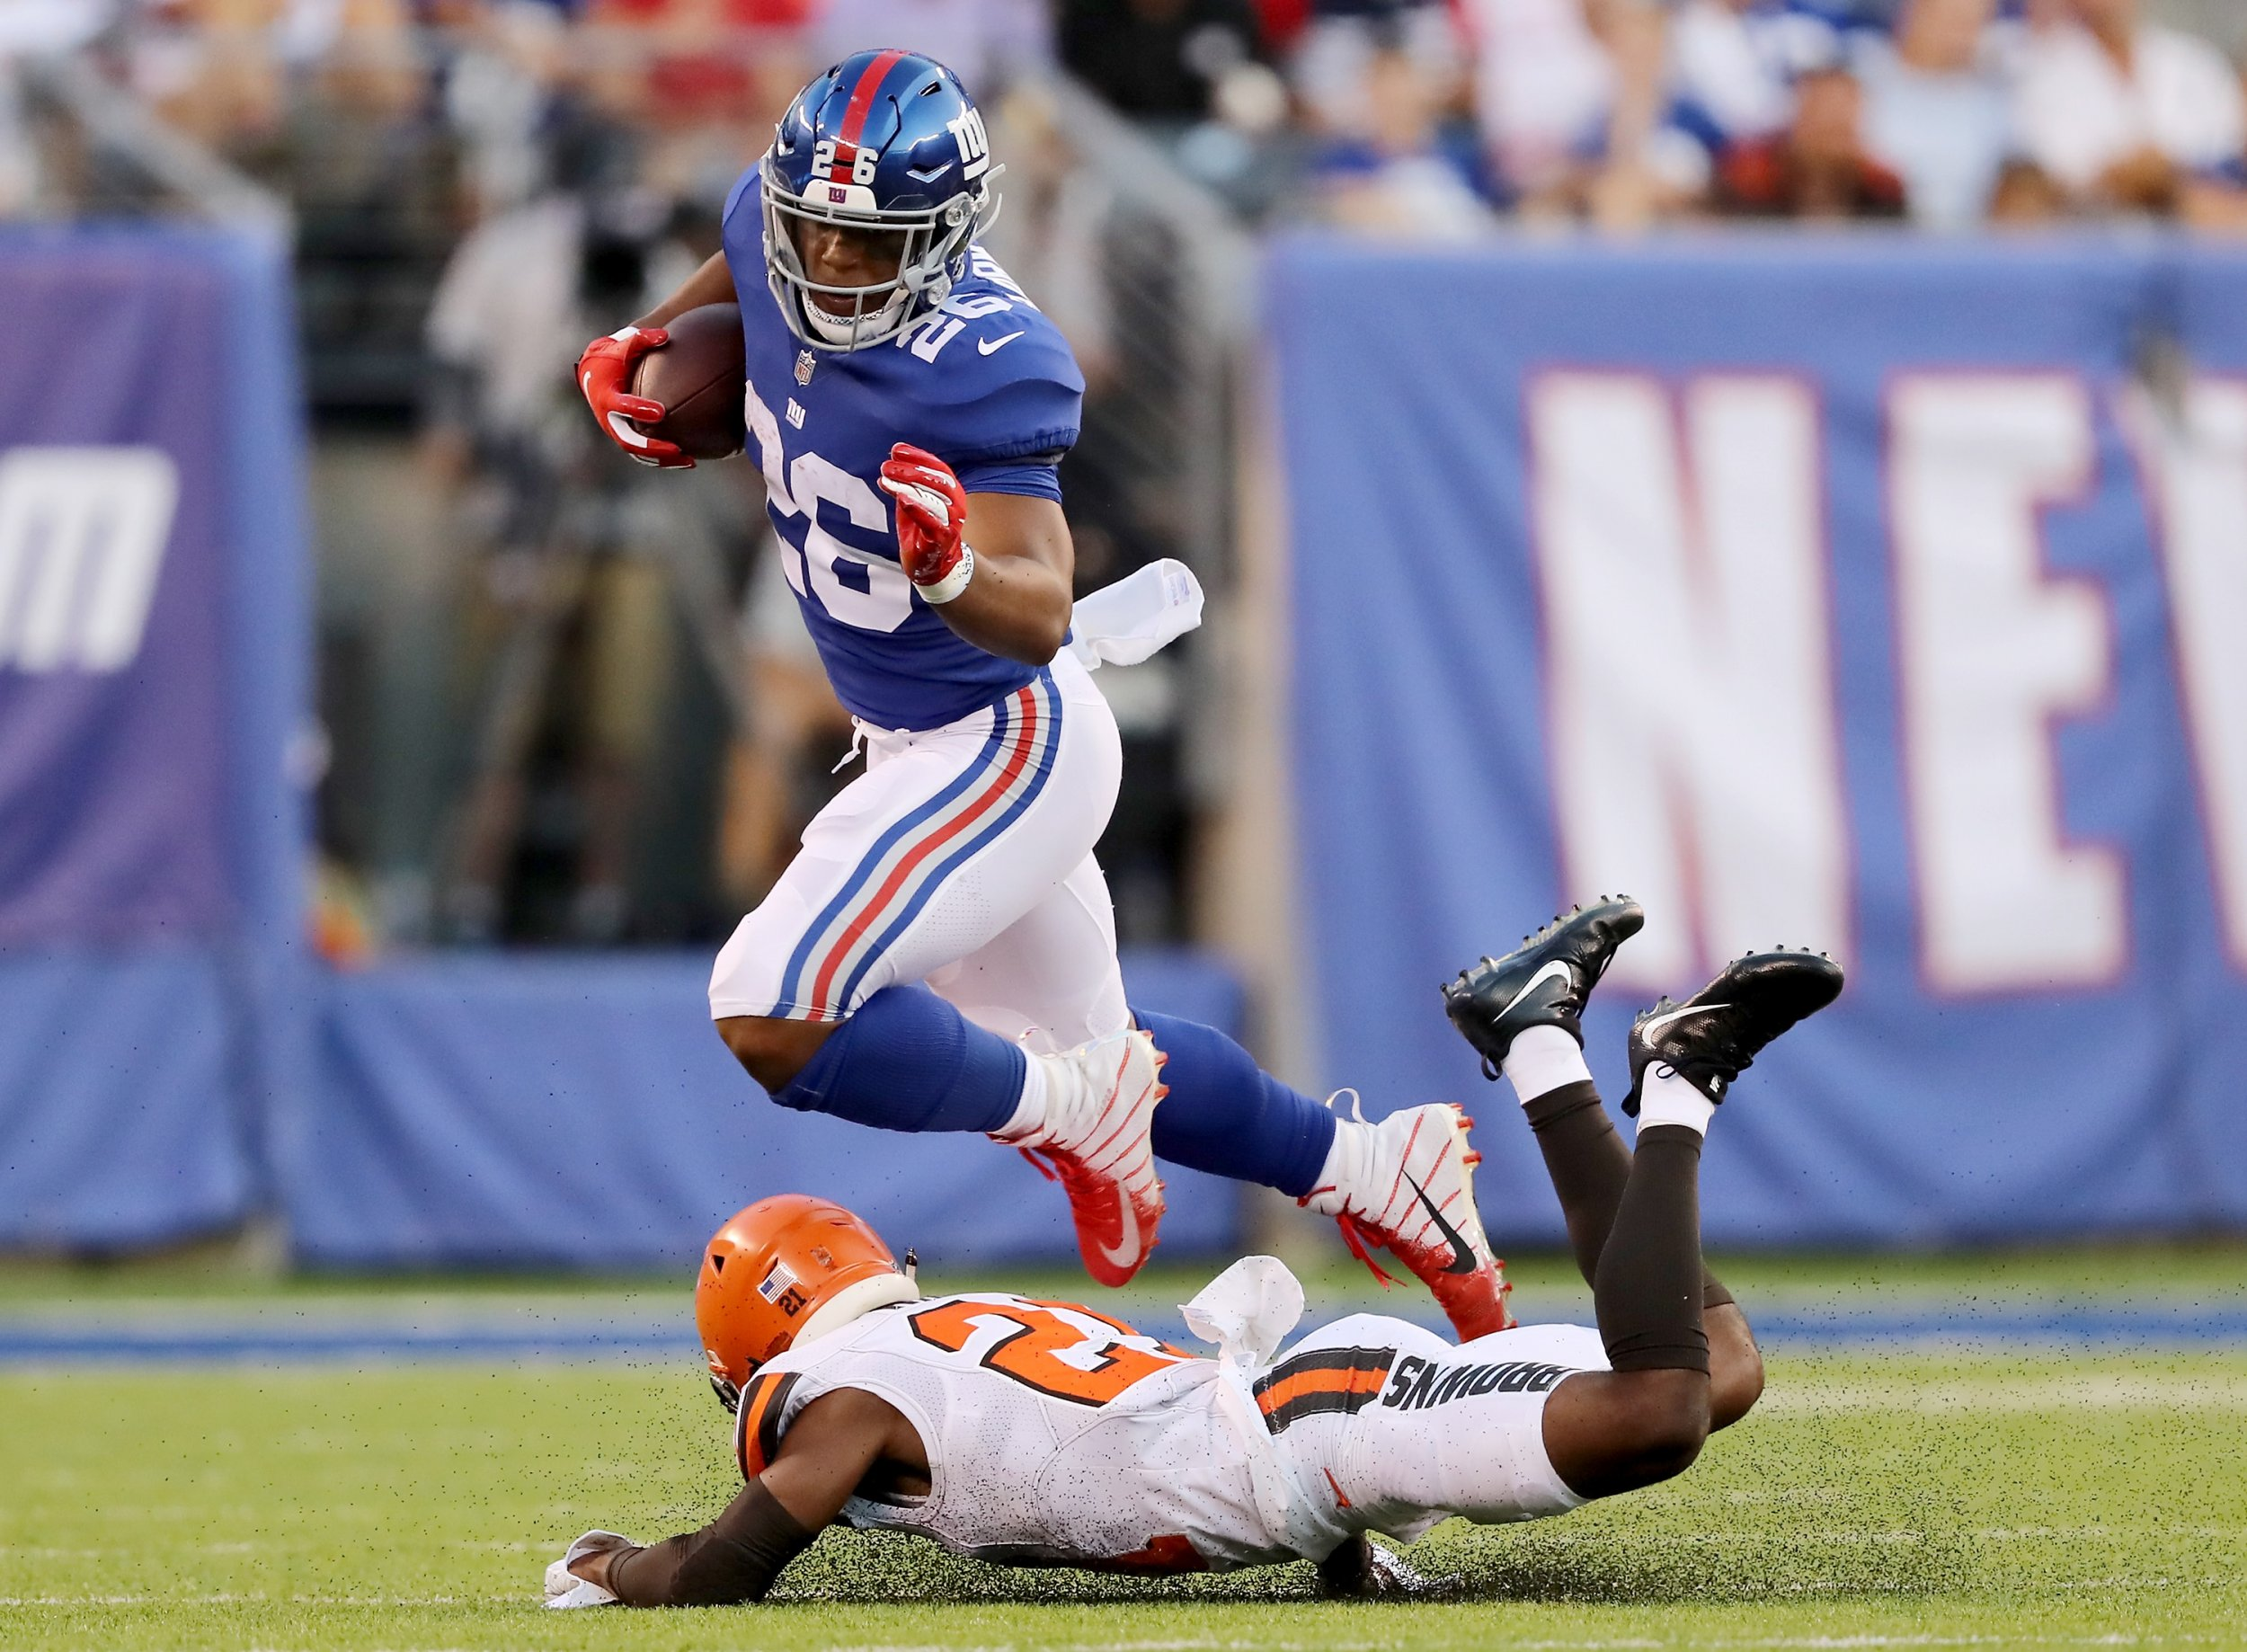 info for d2819 30cc7 Saquon Barkley Injury: Giants Running Back Spotted With Wrap ...